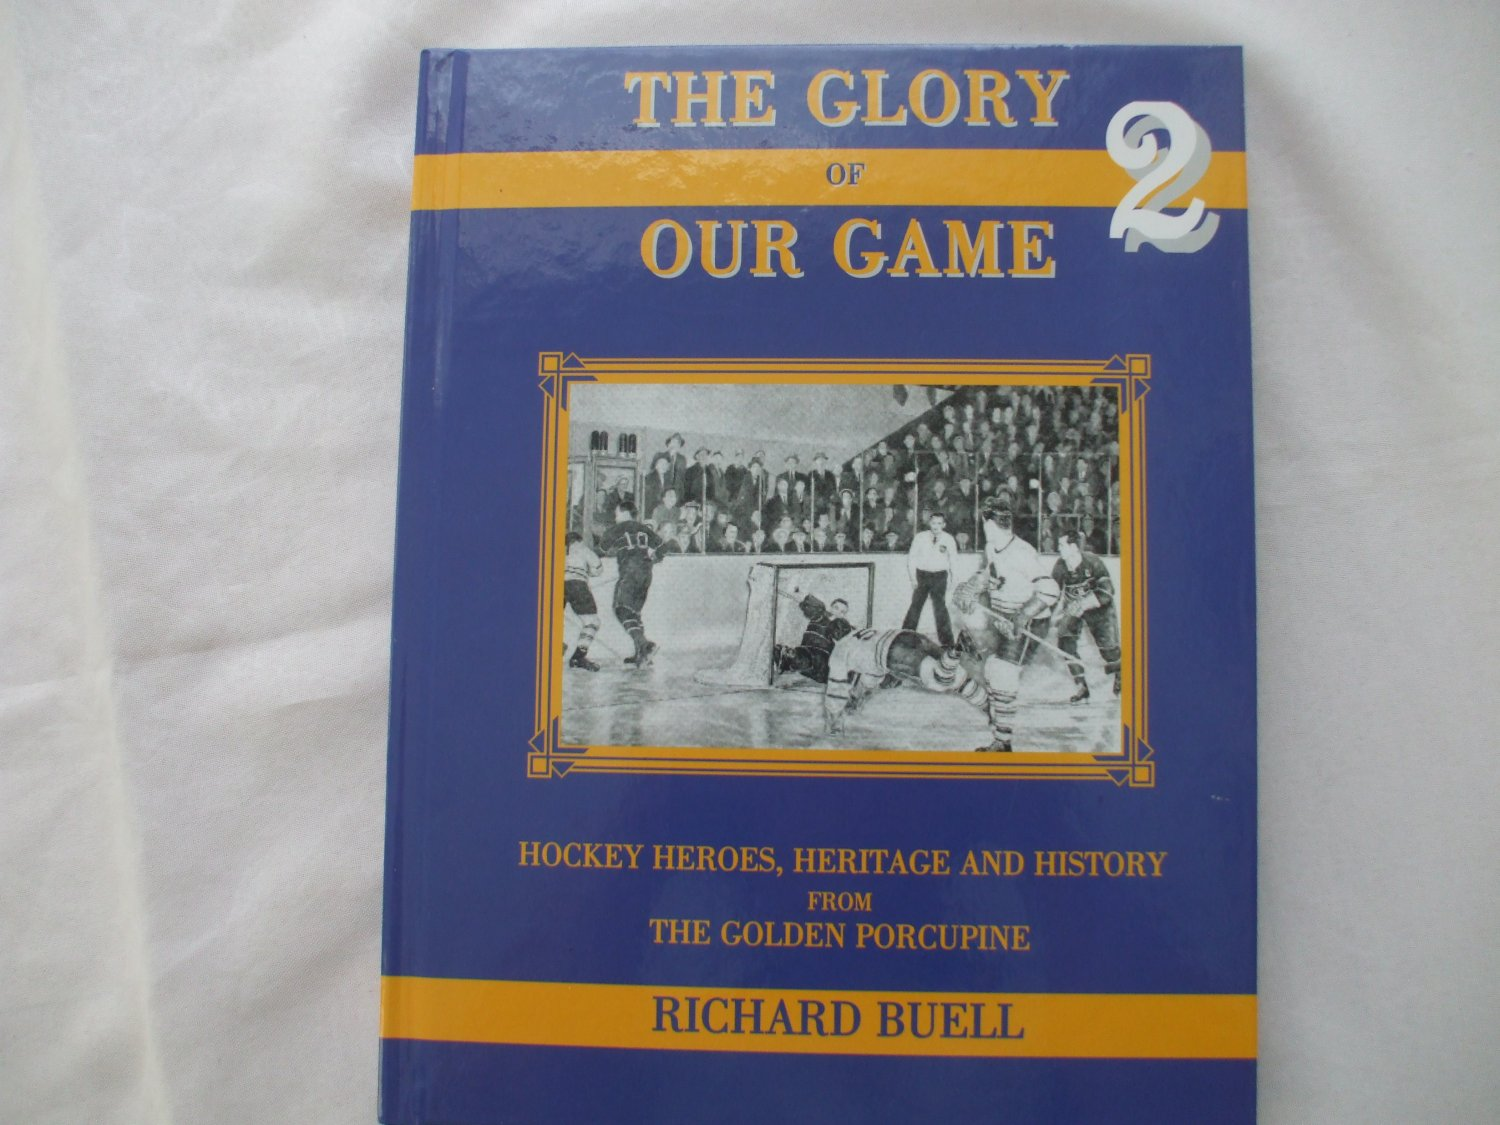 The Glory of Our Game 2 Hockey Heros, Heritage and History from The Golden Porcupine